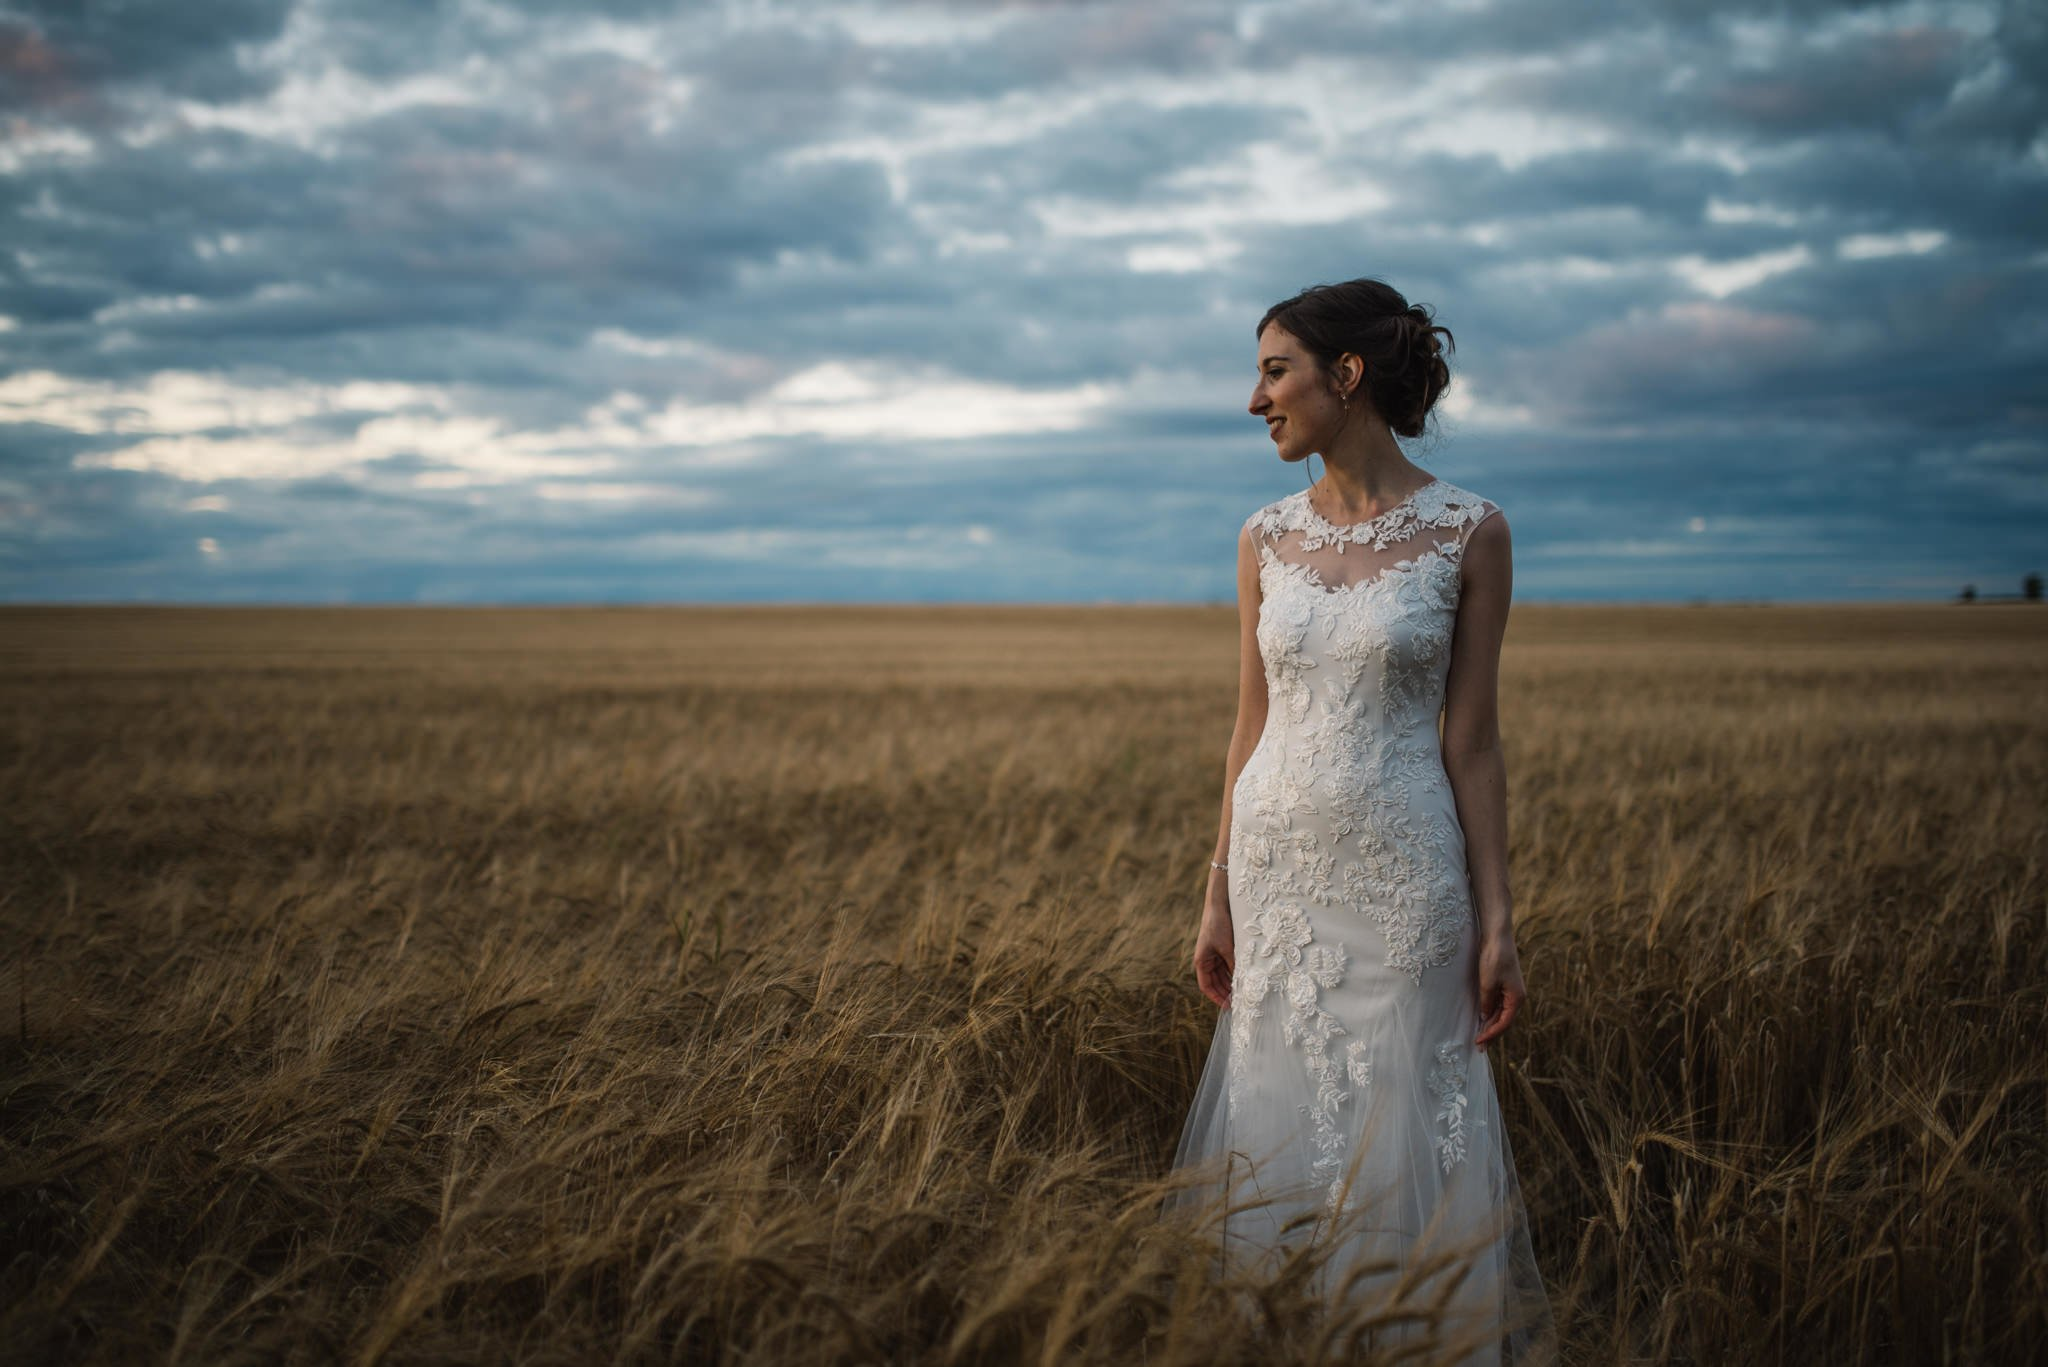 bride in barley field with evening sky